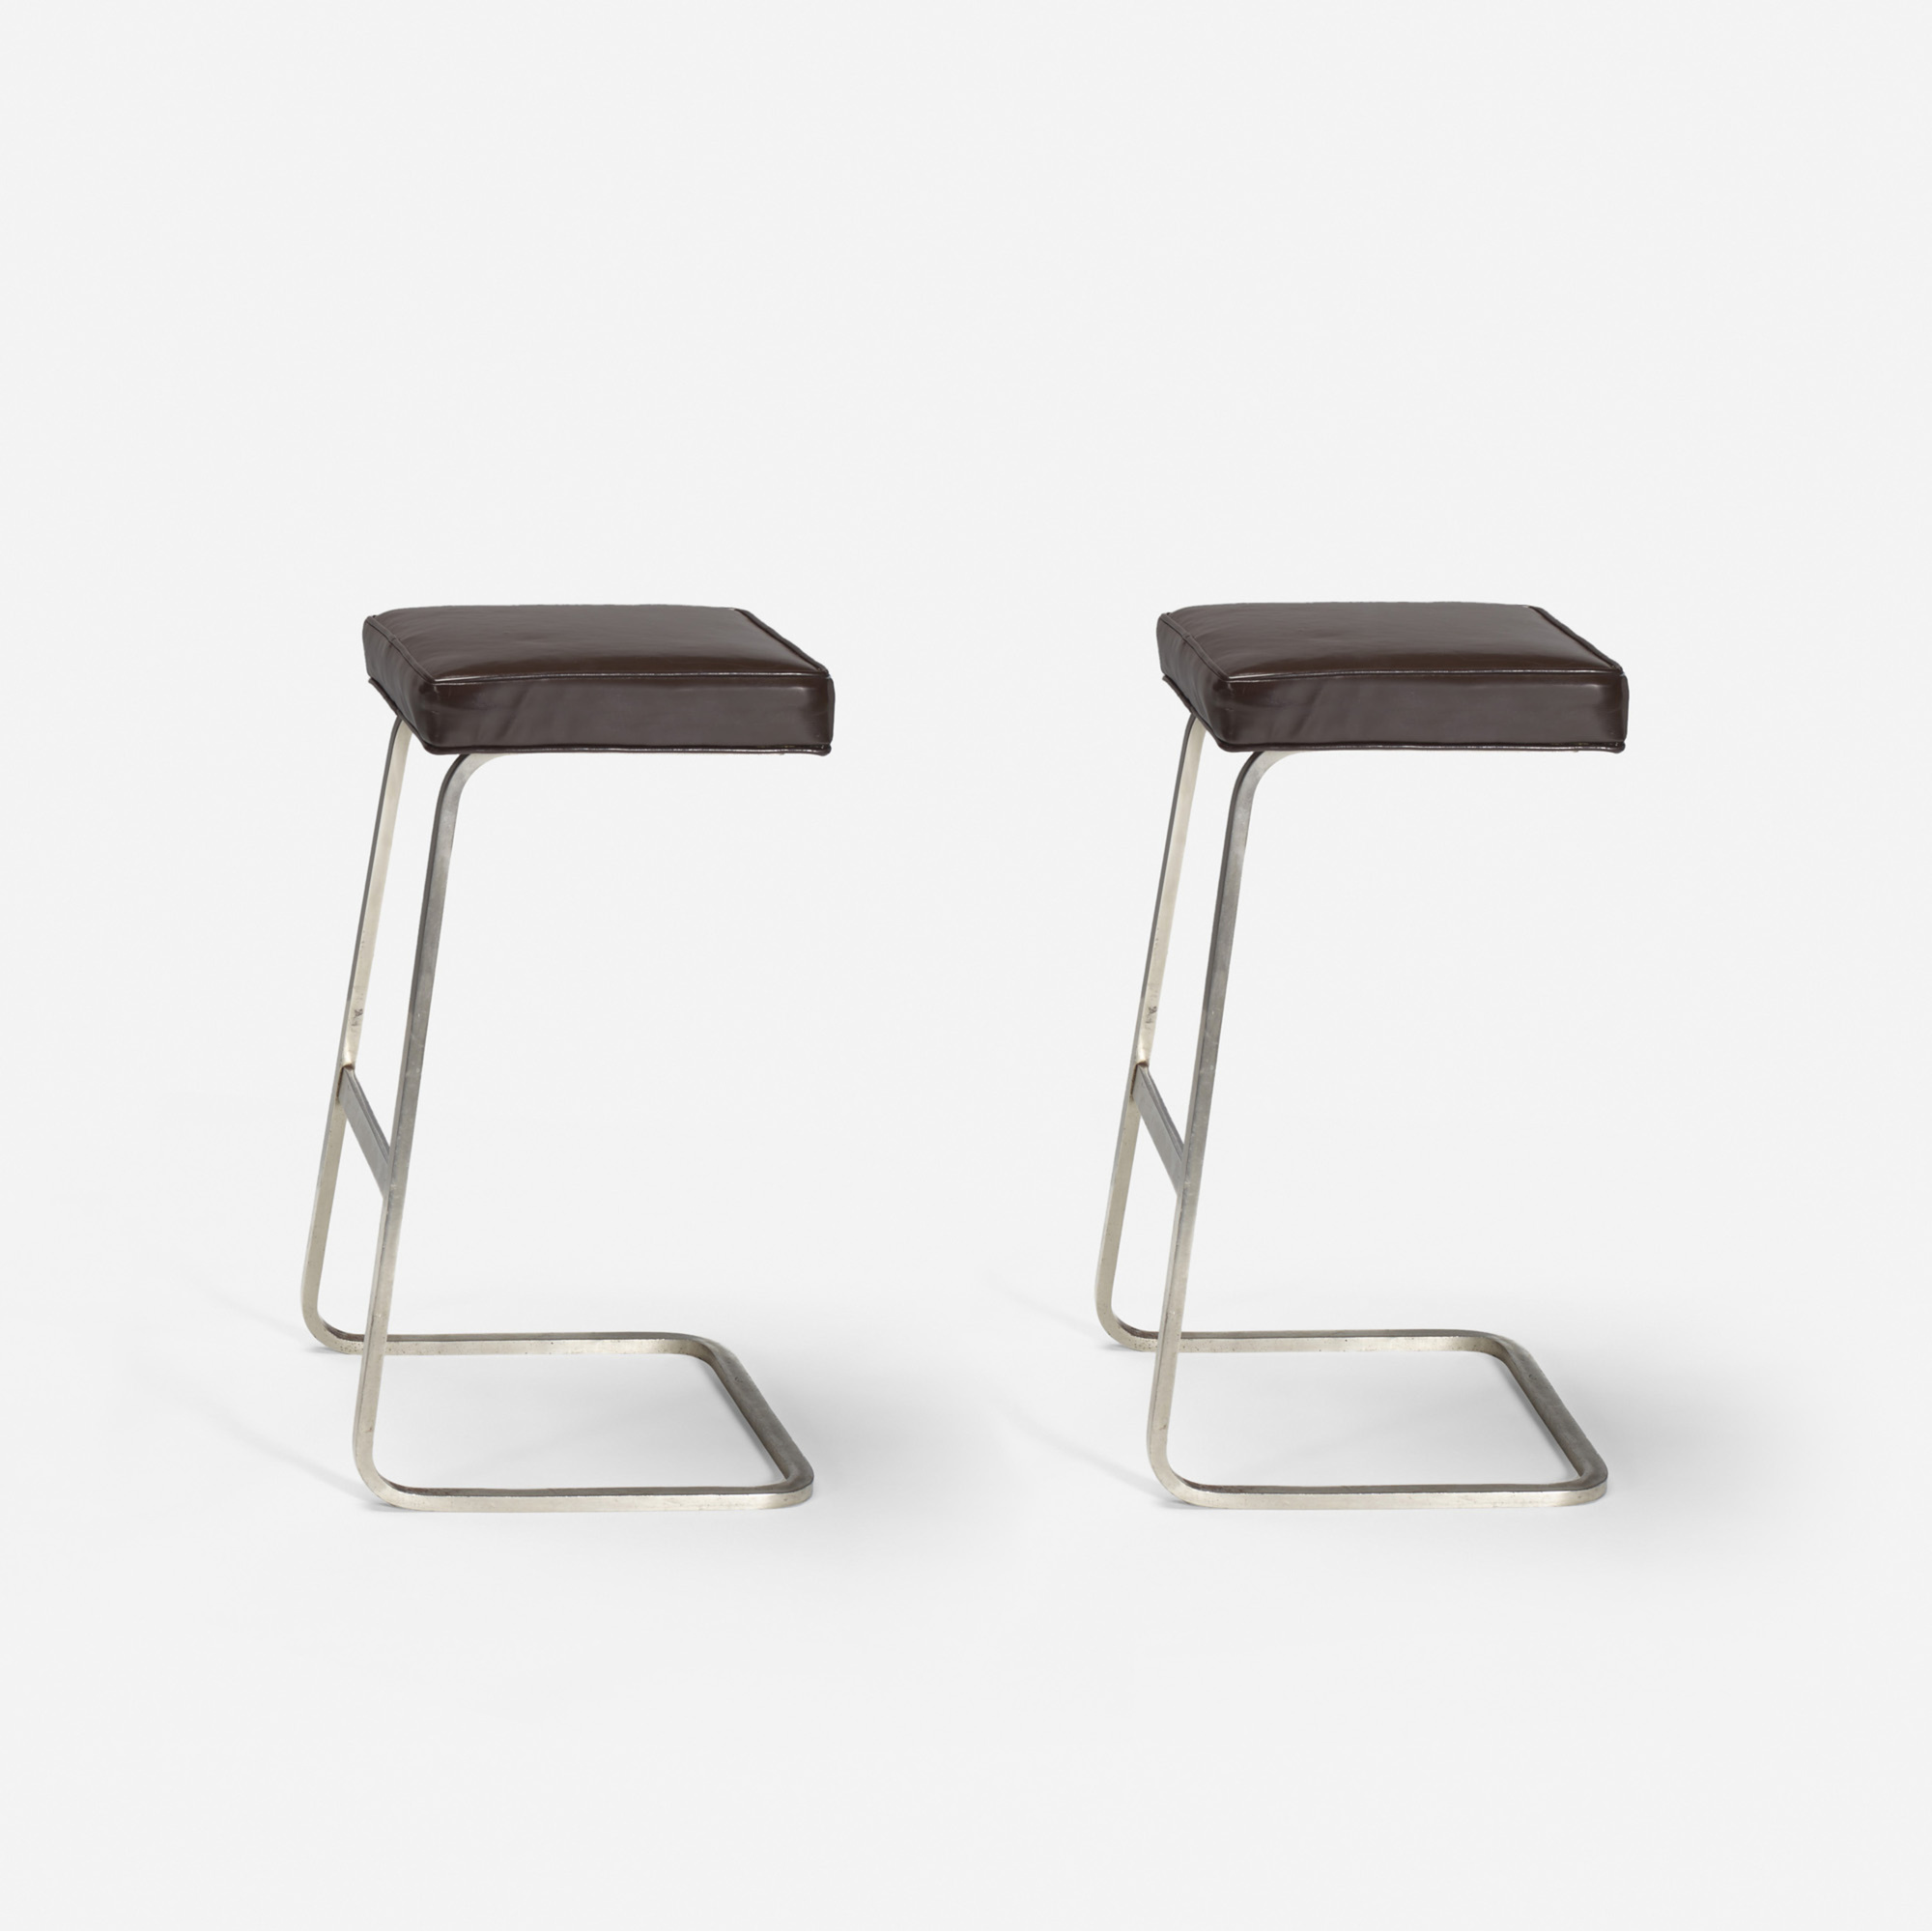 124: Ludwig Mies van der Rohe with Philip Johnson / Four Seasons bar stools from the Grill Room, pair (1 of 1)